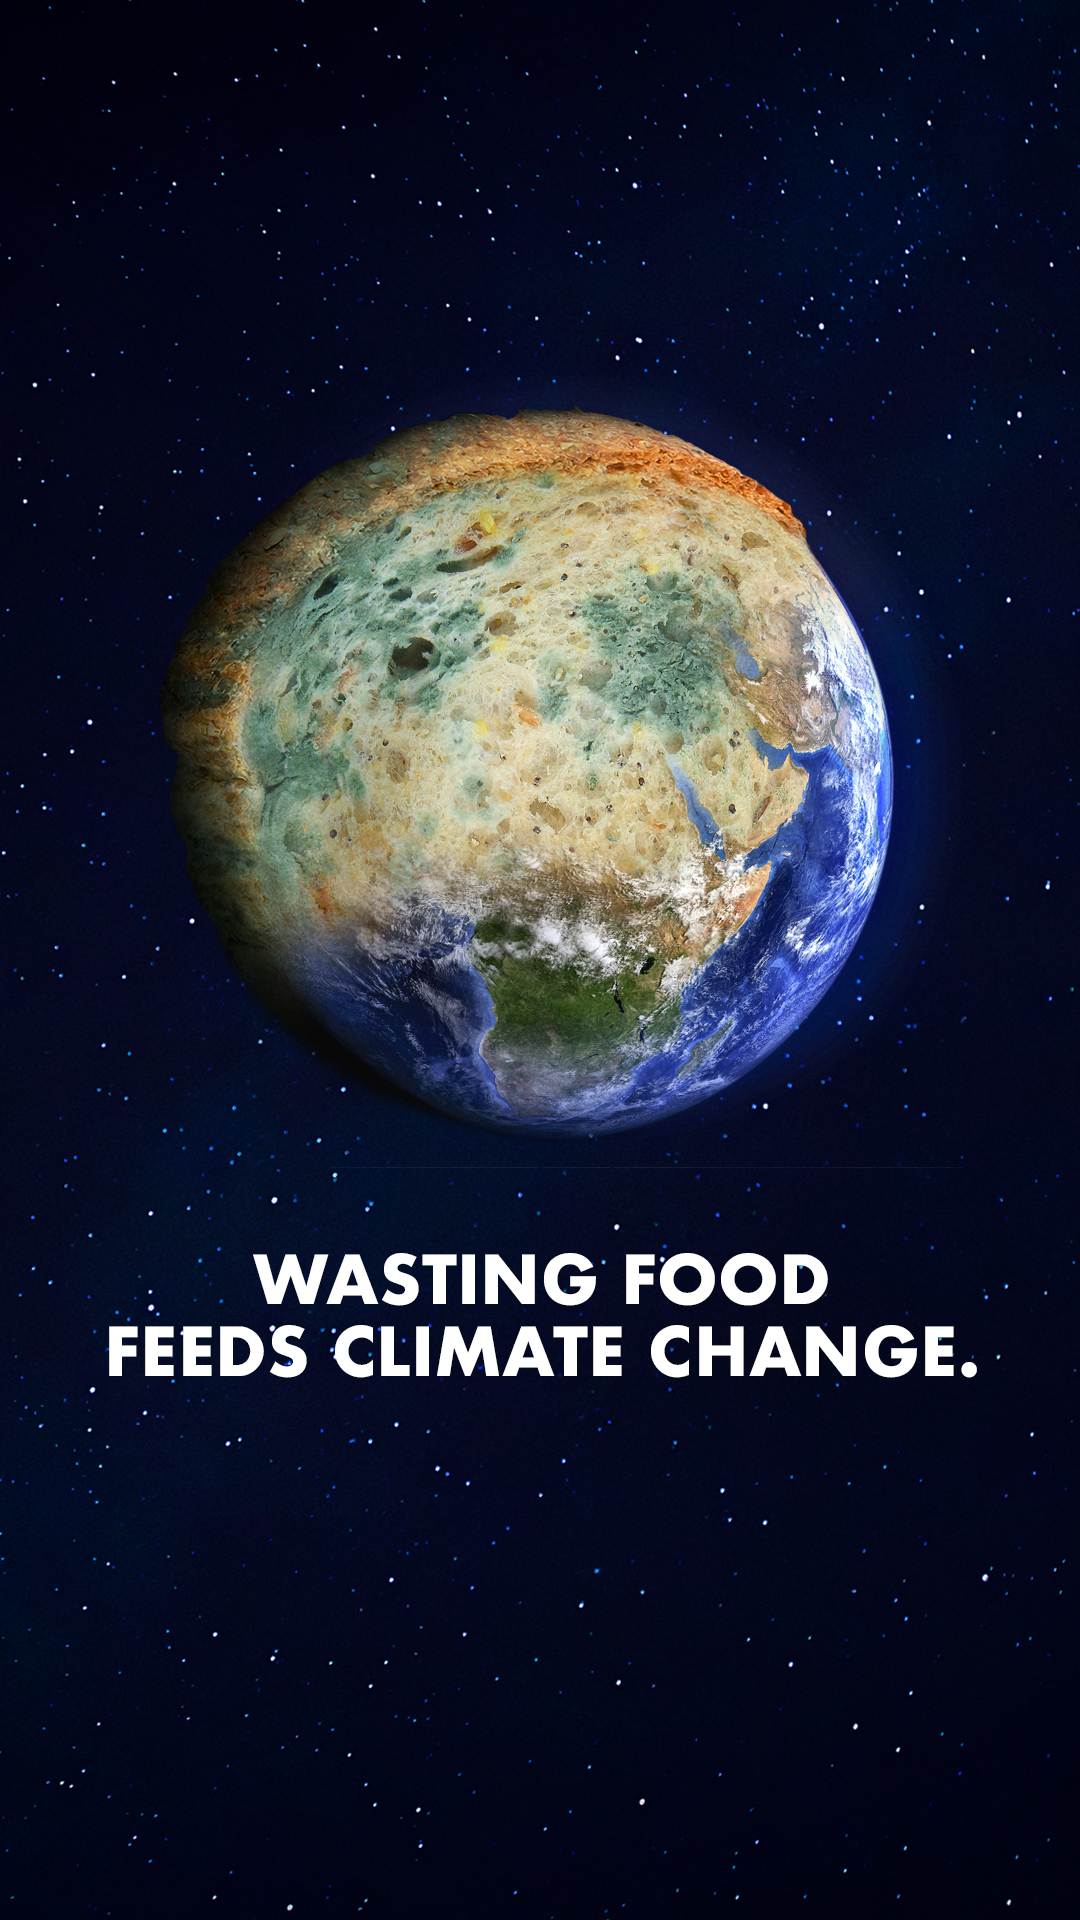 Image of planet earth, with half of it made up of mouldy bread. Text underneath reads 'Wasting food feeds climate change'